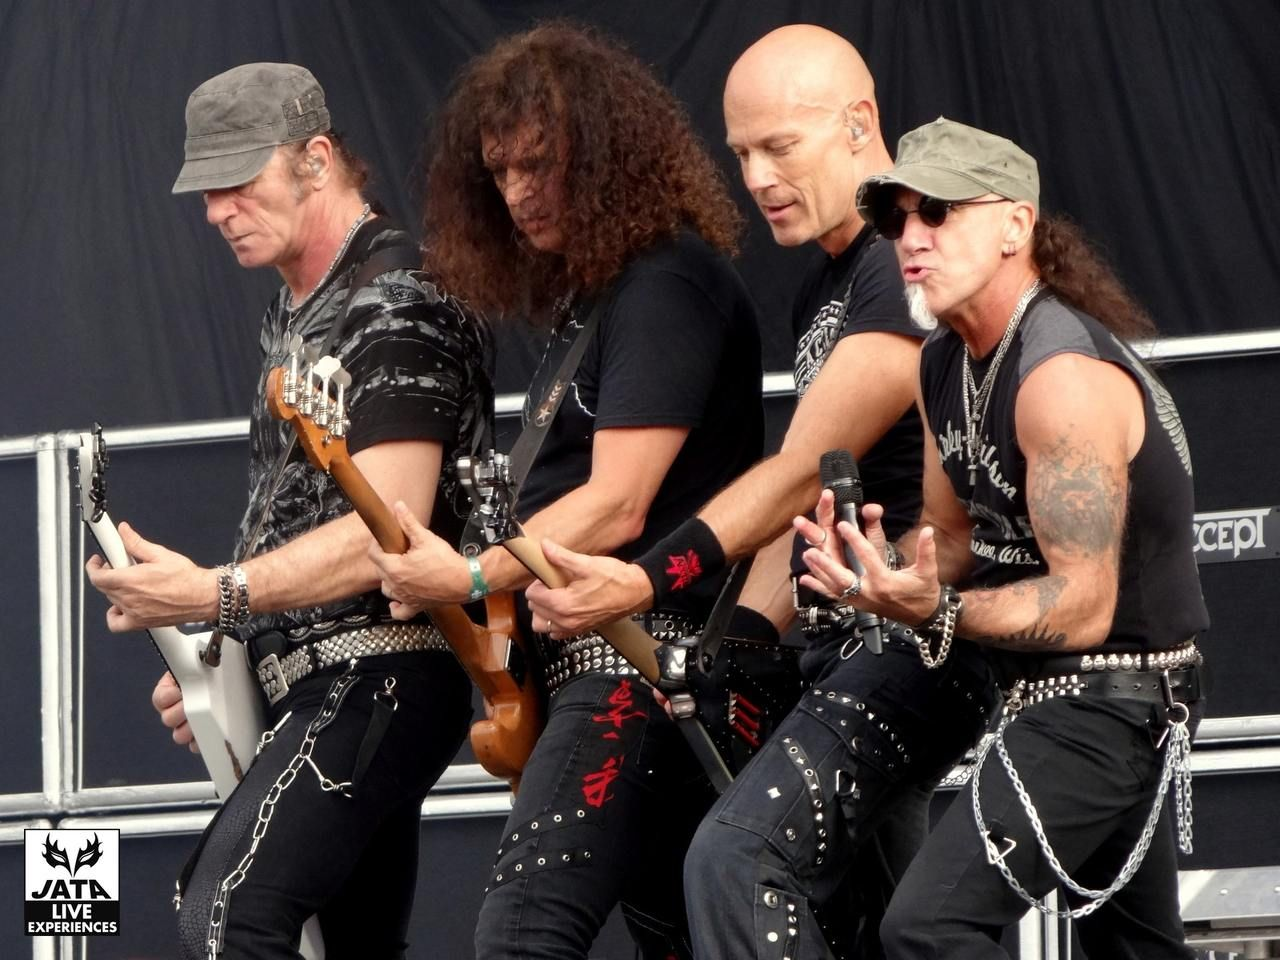 Accept - The Abyss (Live) www.youtube.com/embed/xKAWN2QIdbo